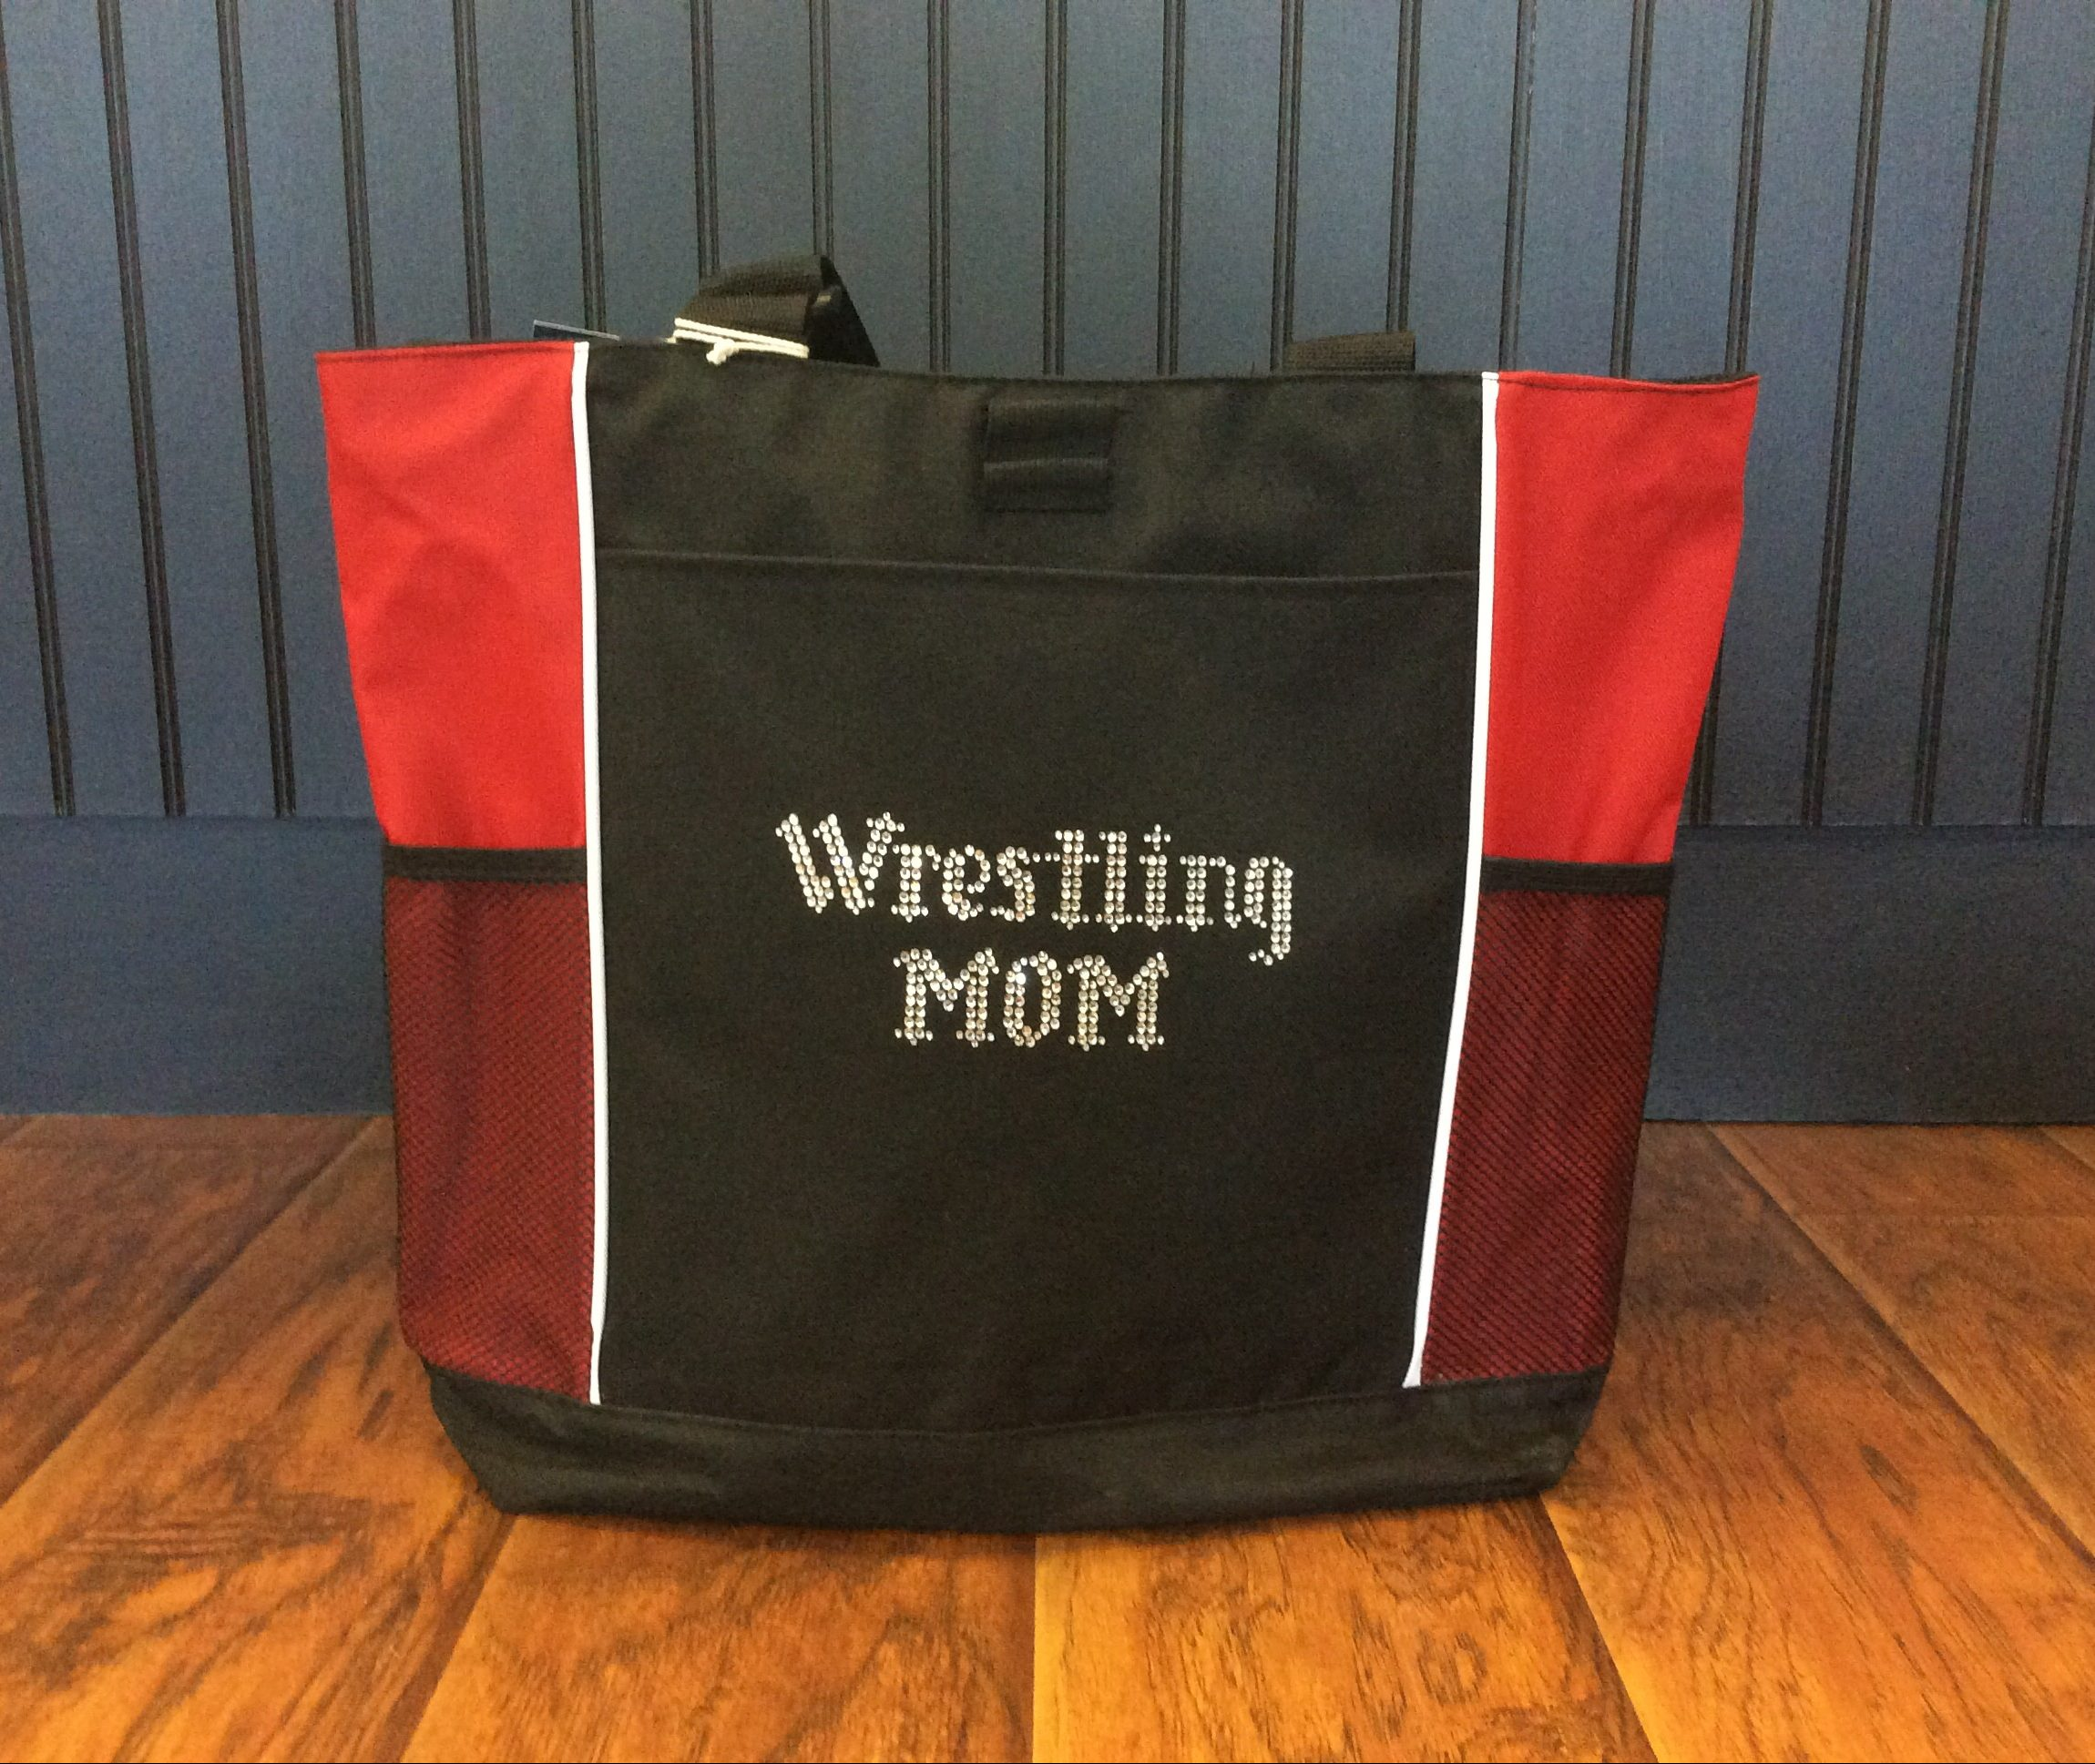 e7bd8eff033 Bling Wrestling Mom Tote Bag - Campus Gear